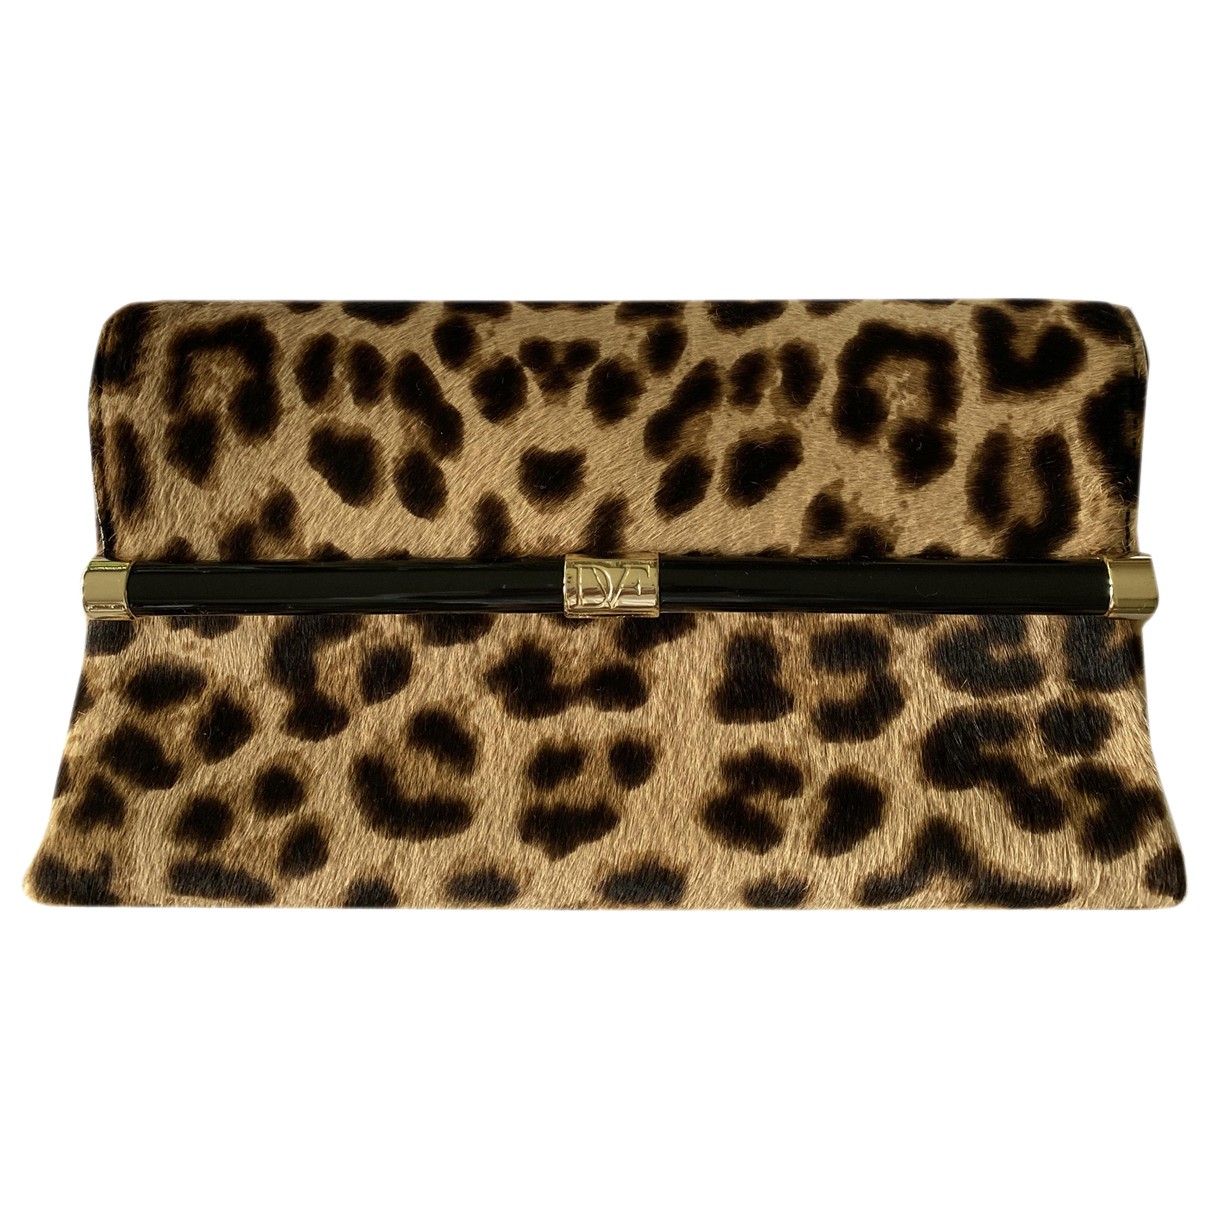 Diane Von Furstenberg \N Clutch in  Beige Kalbsleder in Pony-Optik